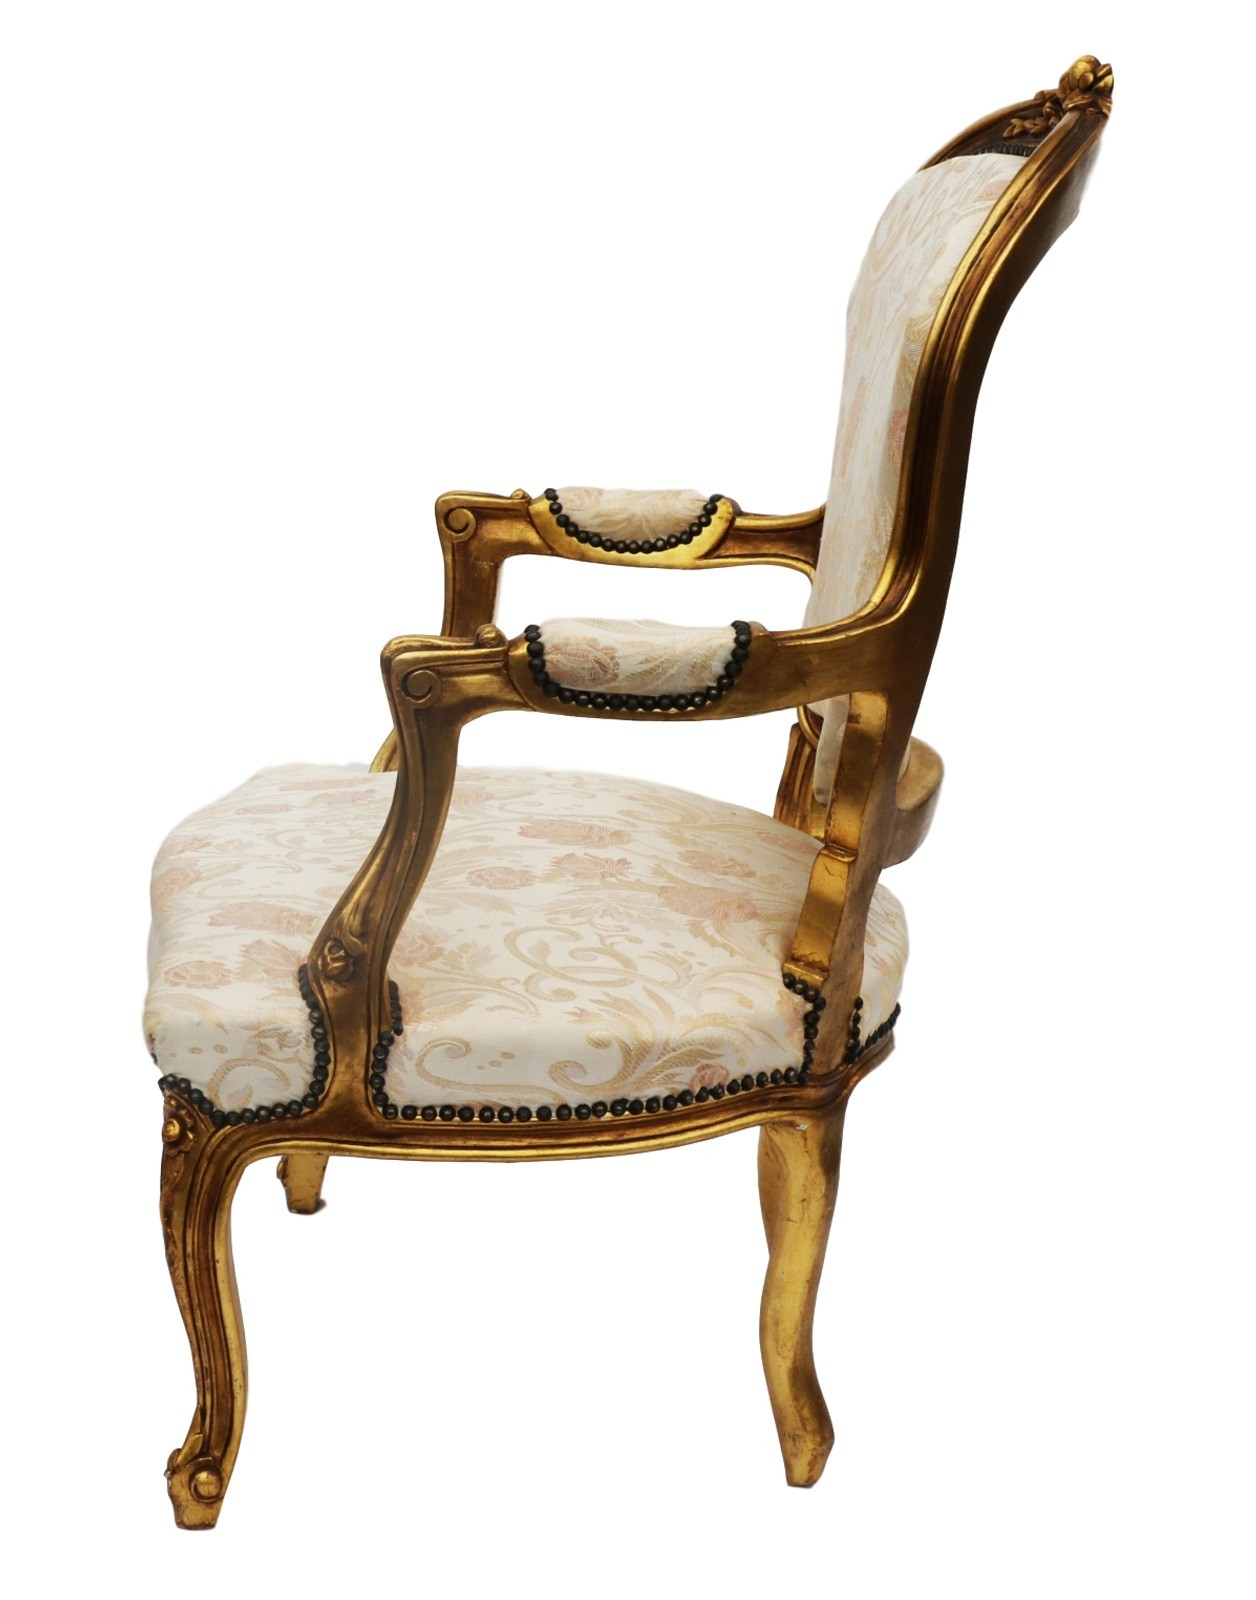 French Louis XV Style Carved Gilt Wood Fauteuil Arm Chair